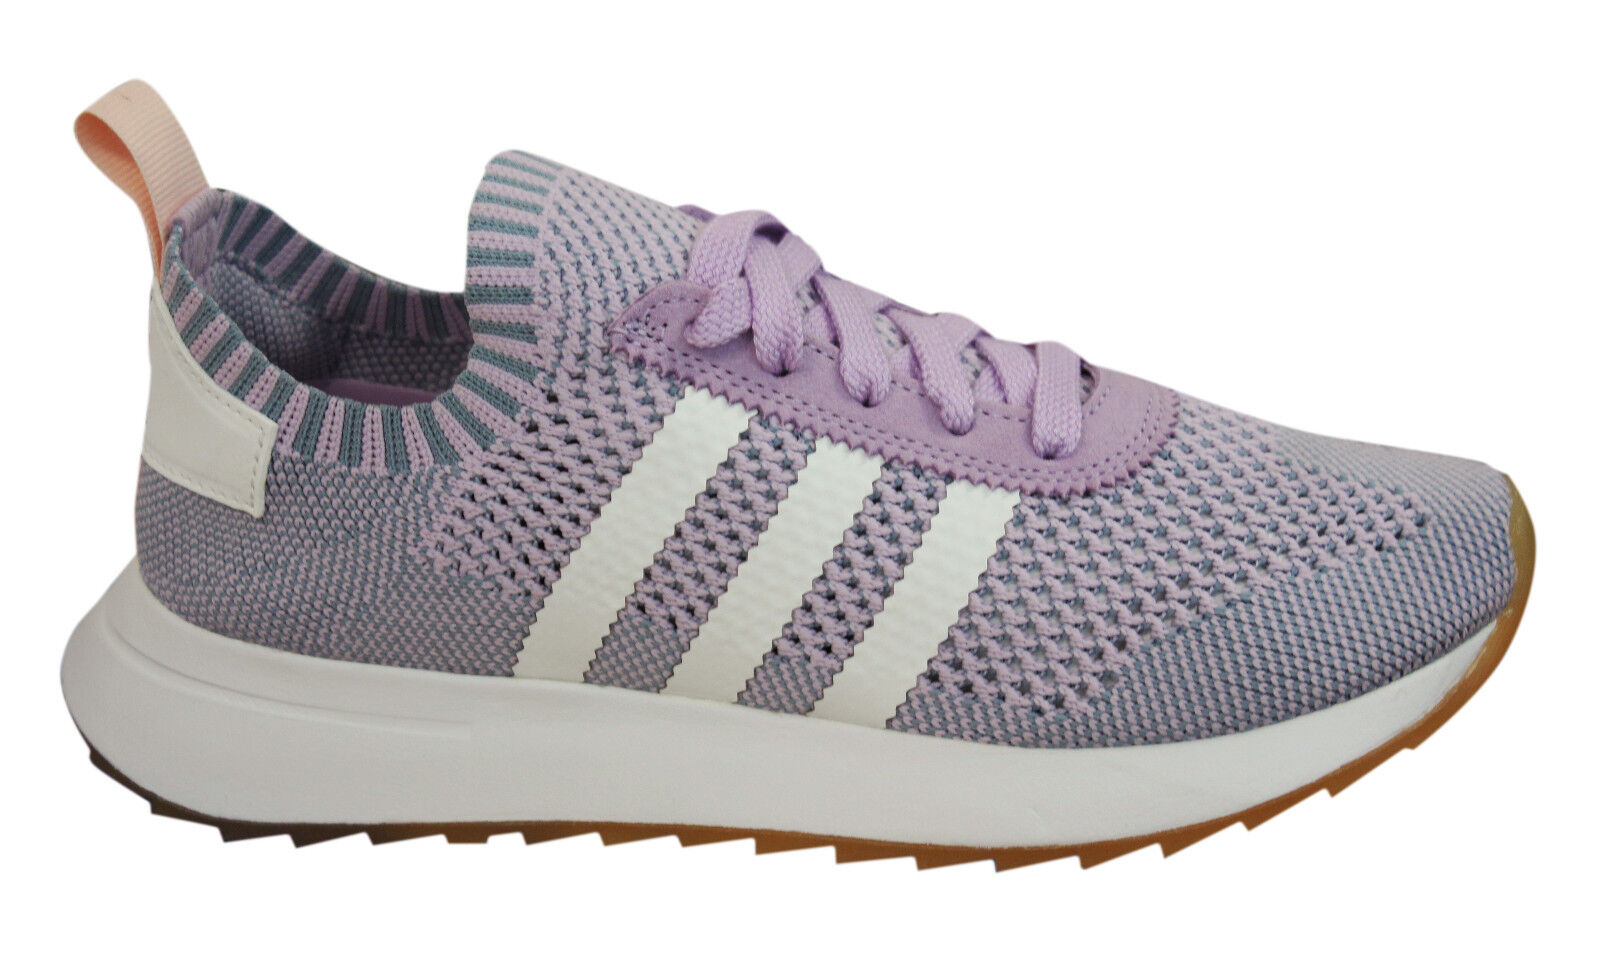 Adidas Originals Flash Back Up Primeknit Damenschuhe Trainers Lace Up Back Schuhes BY9103 U60 6fb67e